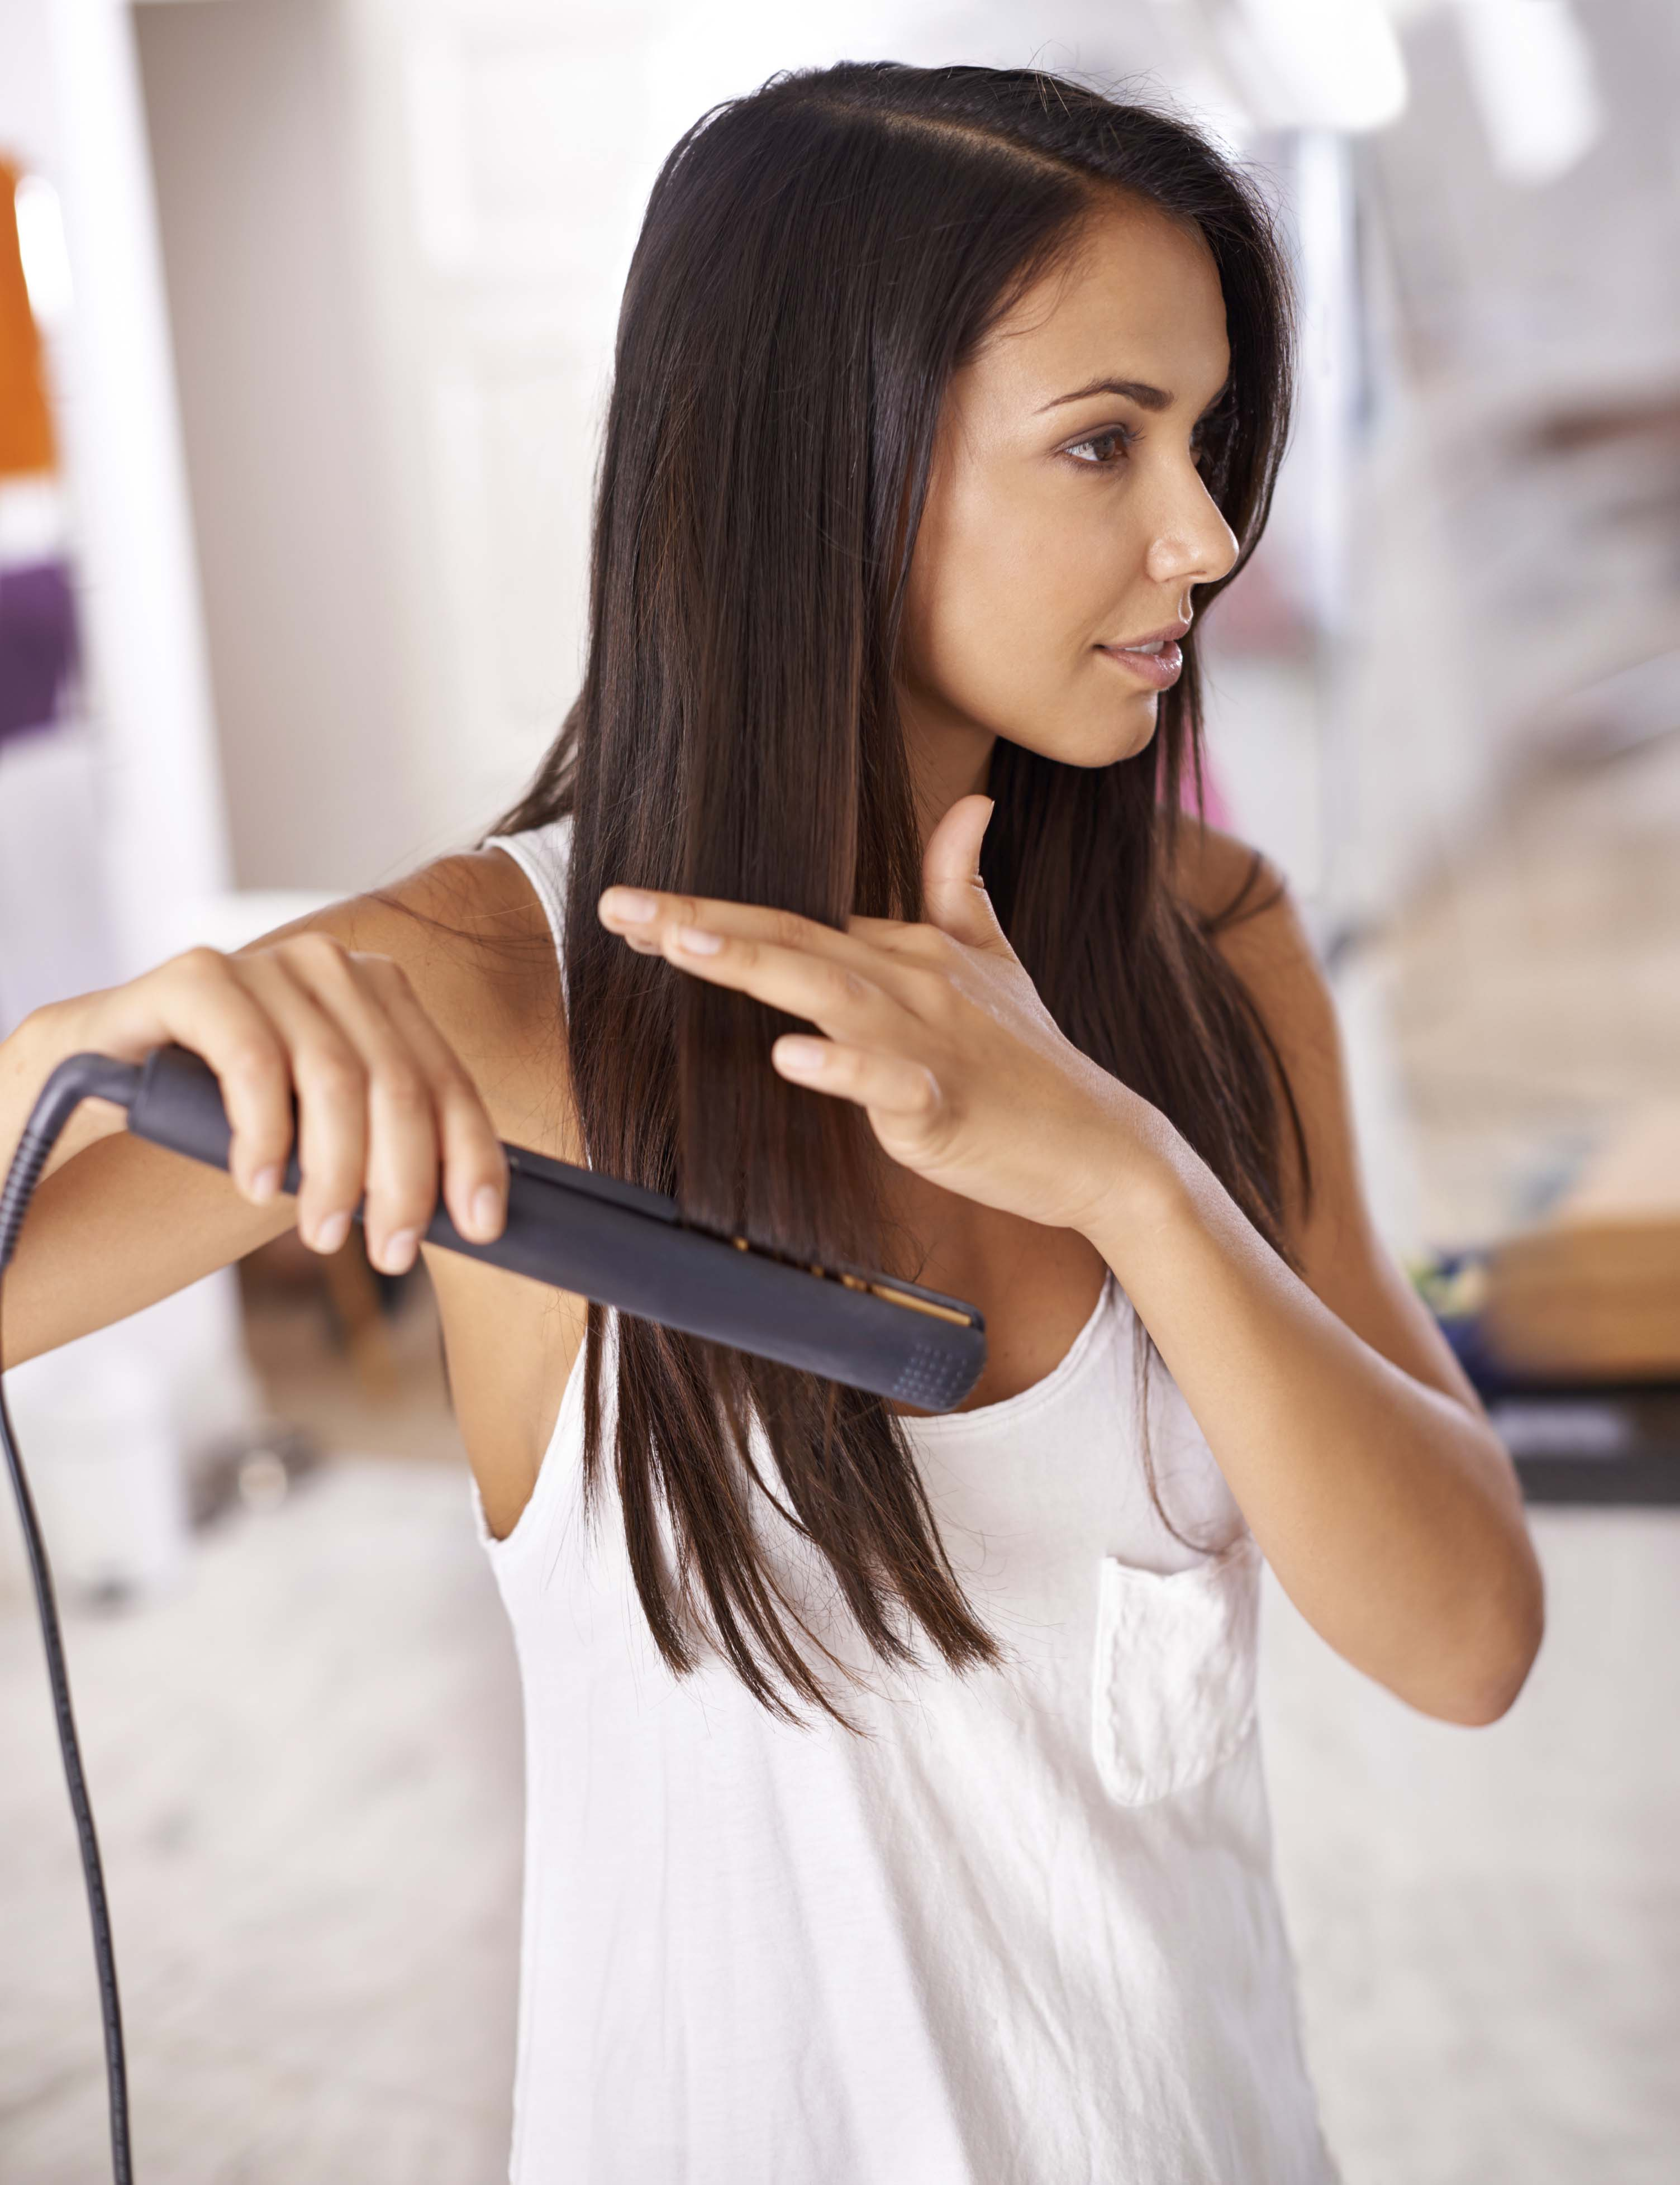 Straightening hair: Tips, tools and products you need